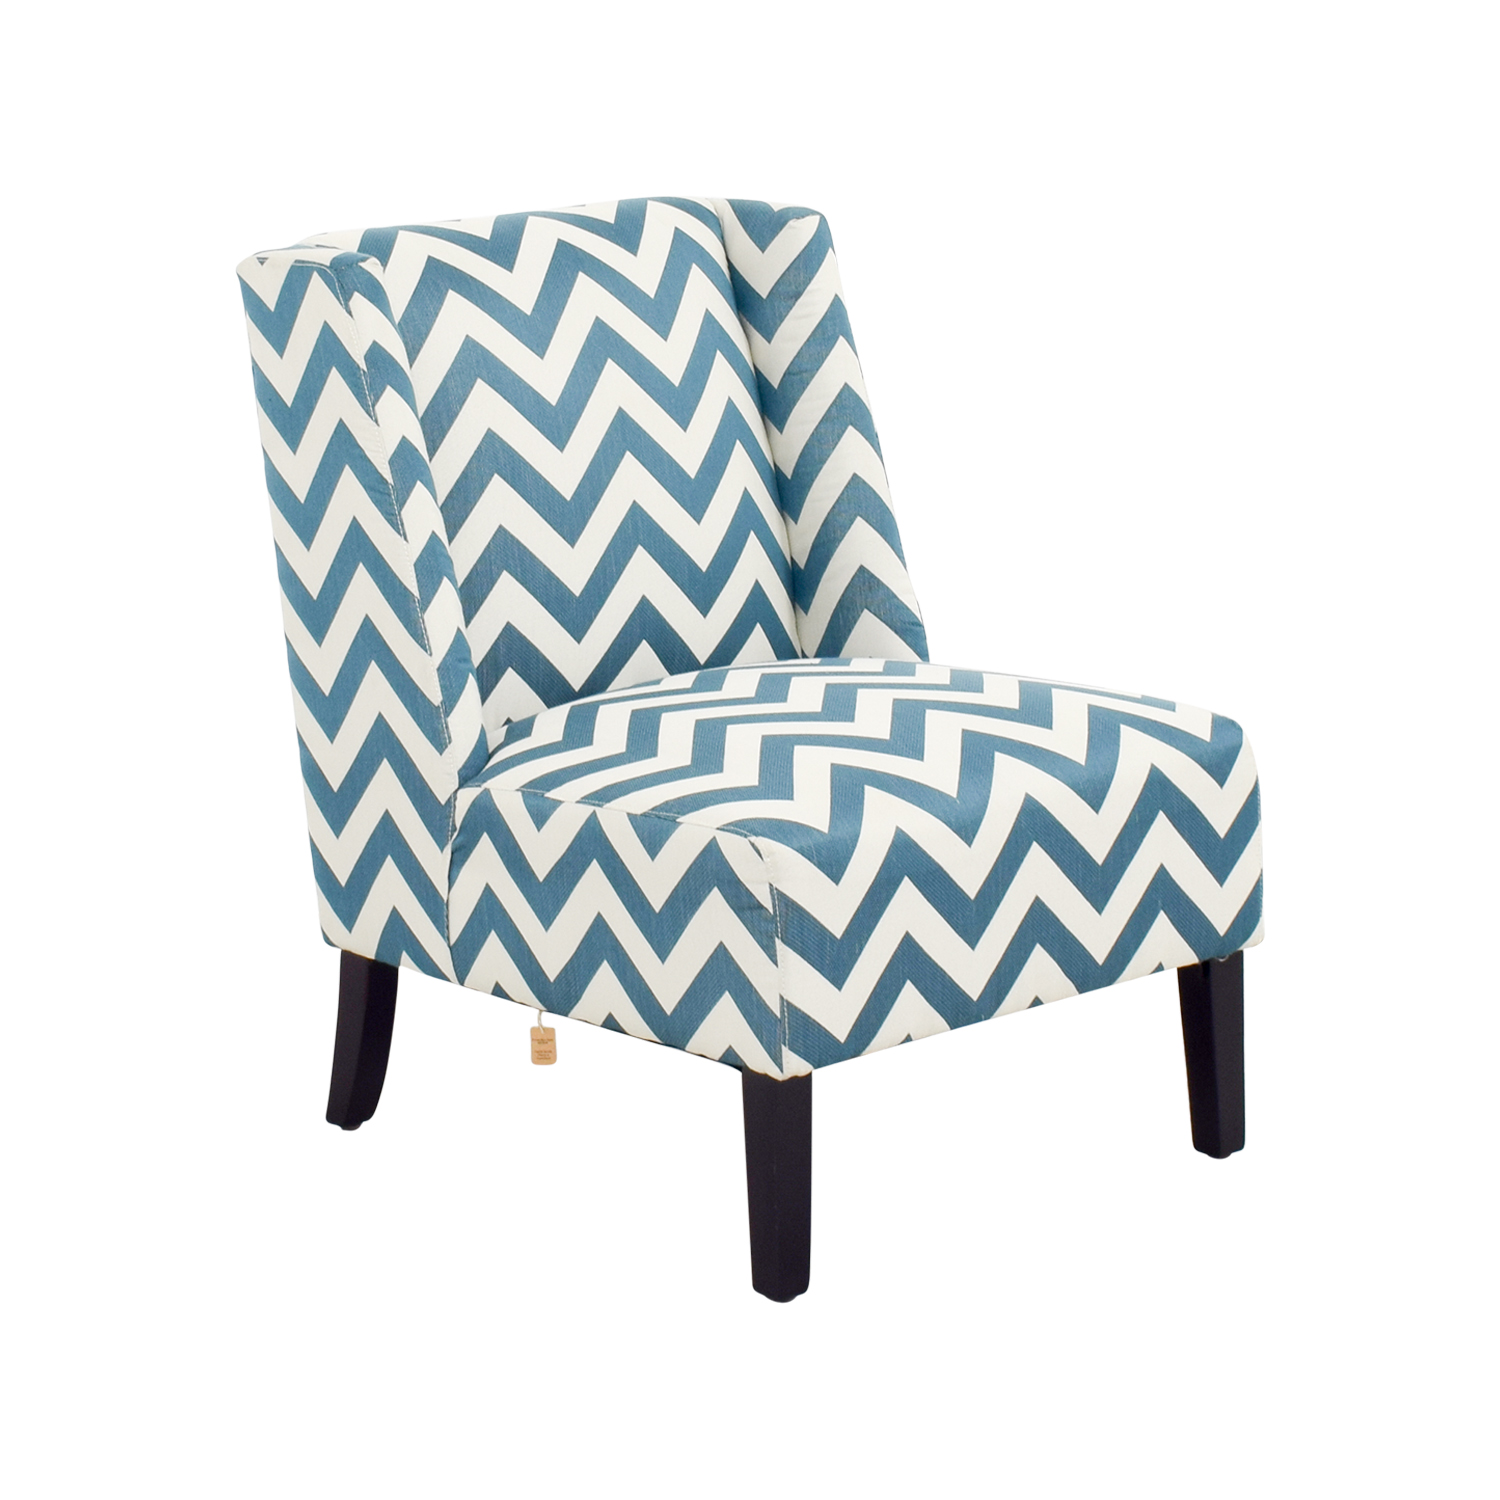 Pier 1 Accent Chairs Off White.71 Off Pier 1 Pier 1 Imports Owen Wing Chair Chairs